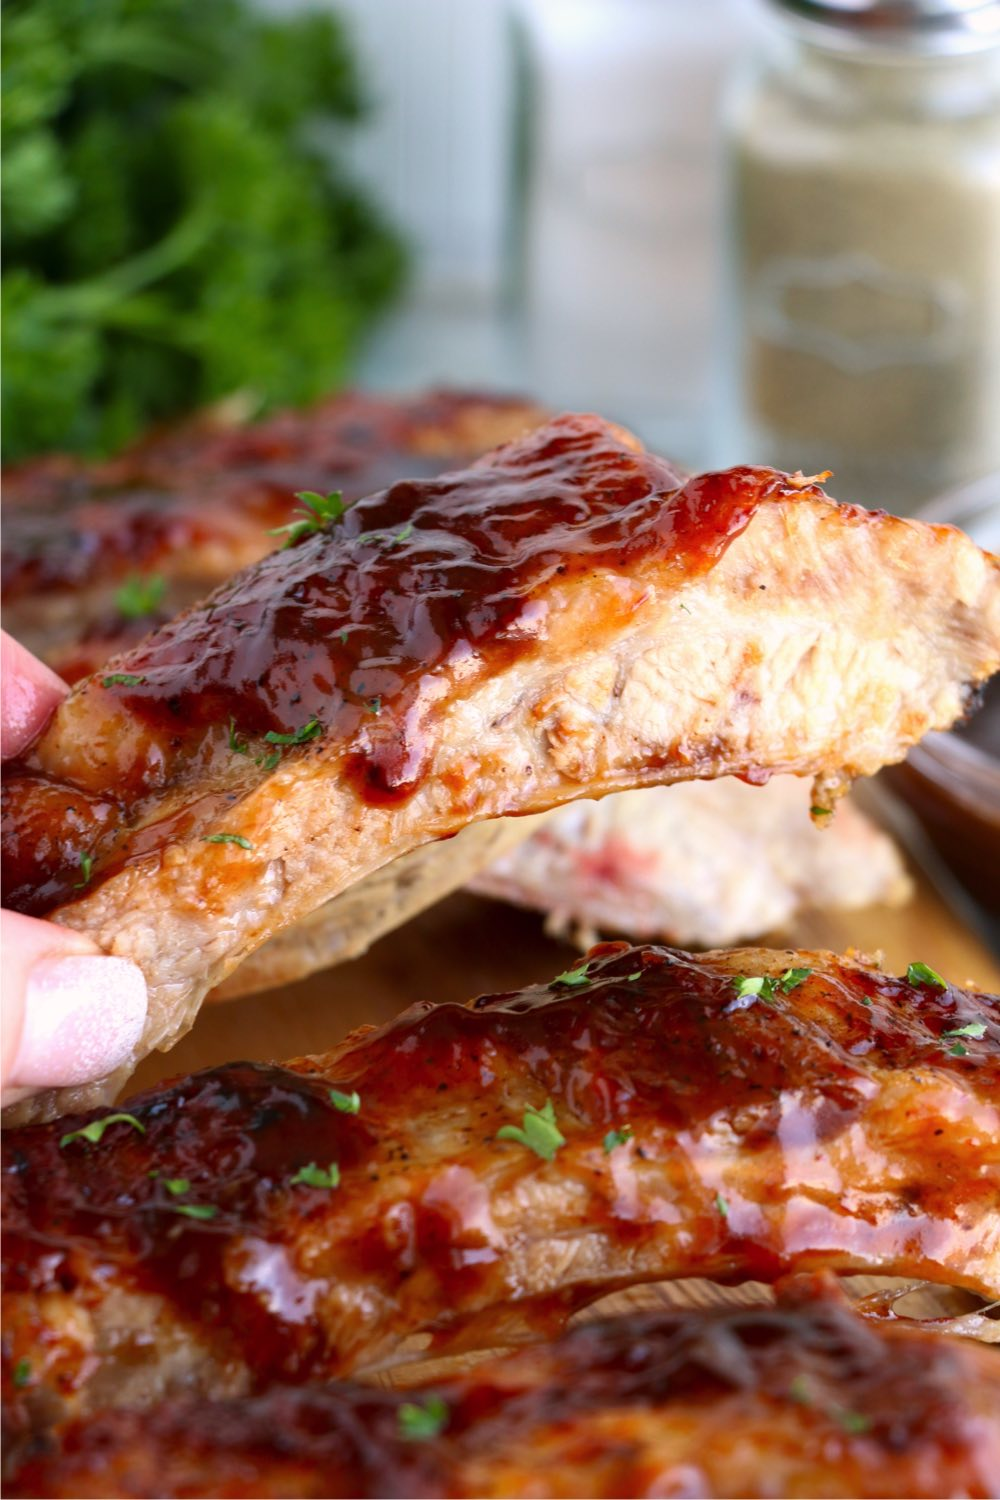 piece of BBQ ribs with sauce on them